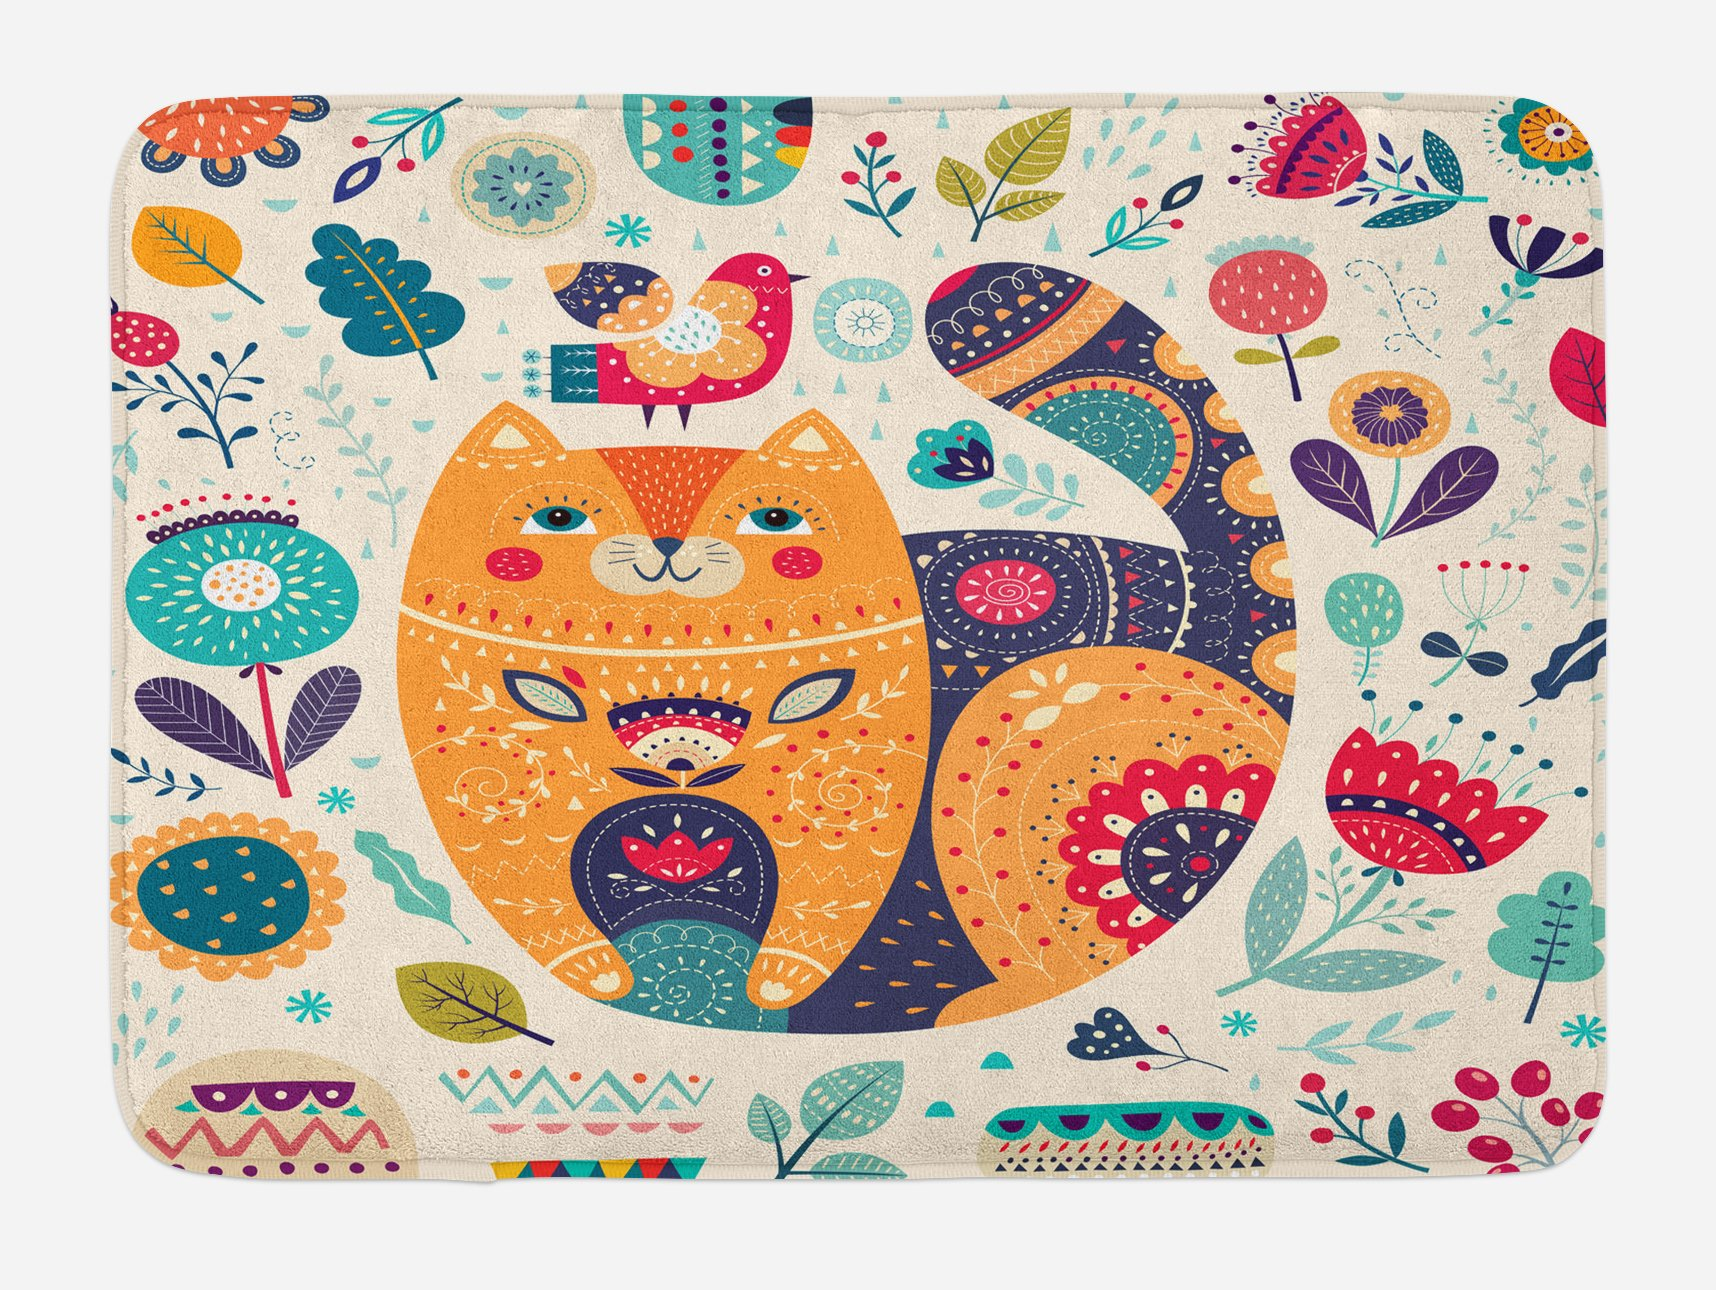 Ambesonne Paisley Bath Mat, Little Smiling Chubby Cheek Cat Animal with Various Oriental Leaf Flower Artwork, Plush Bathroom Decor Mat with Non Slip Backing, 29.5 W X 17.5 W Inches, Multicolor